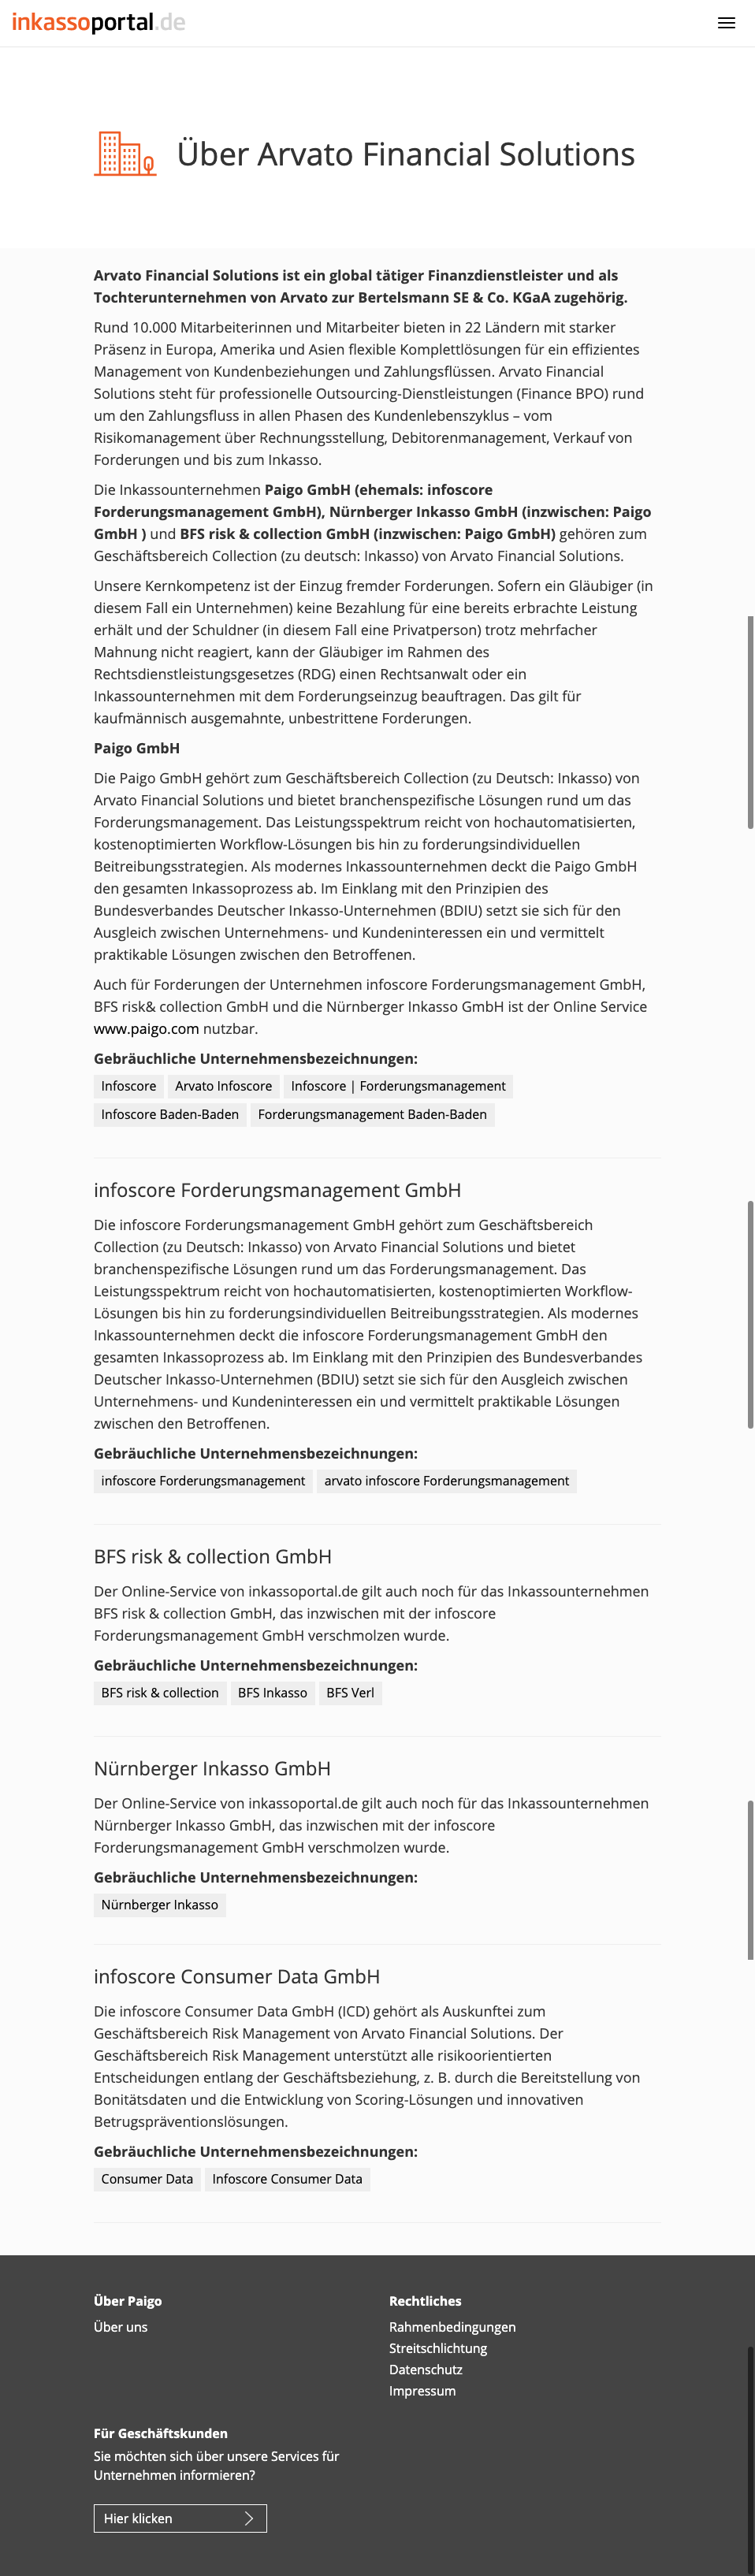 paigo GmbH - Whitelabel-Lösungen Screenshot